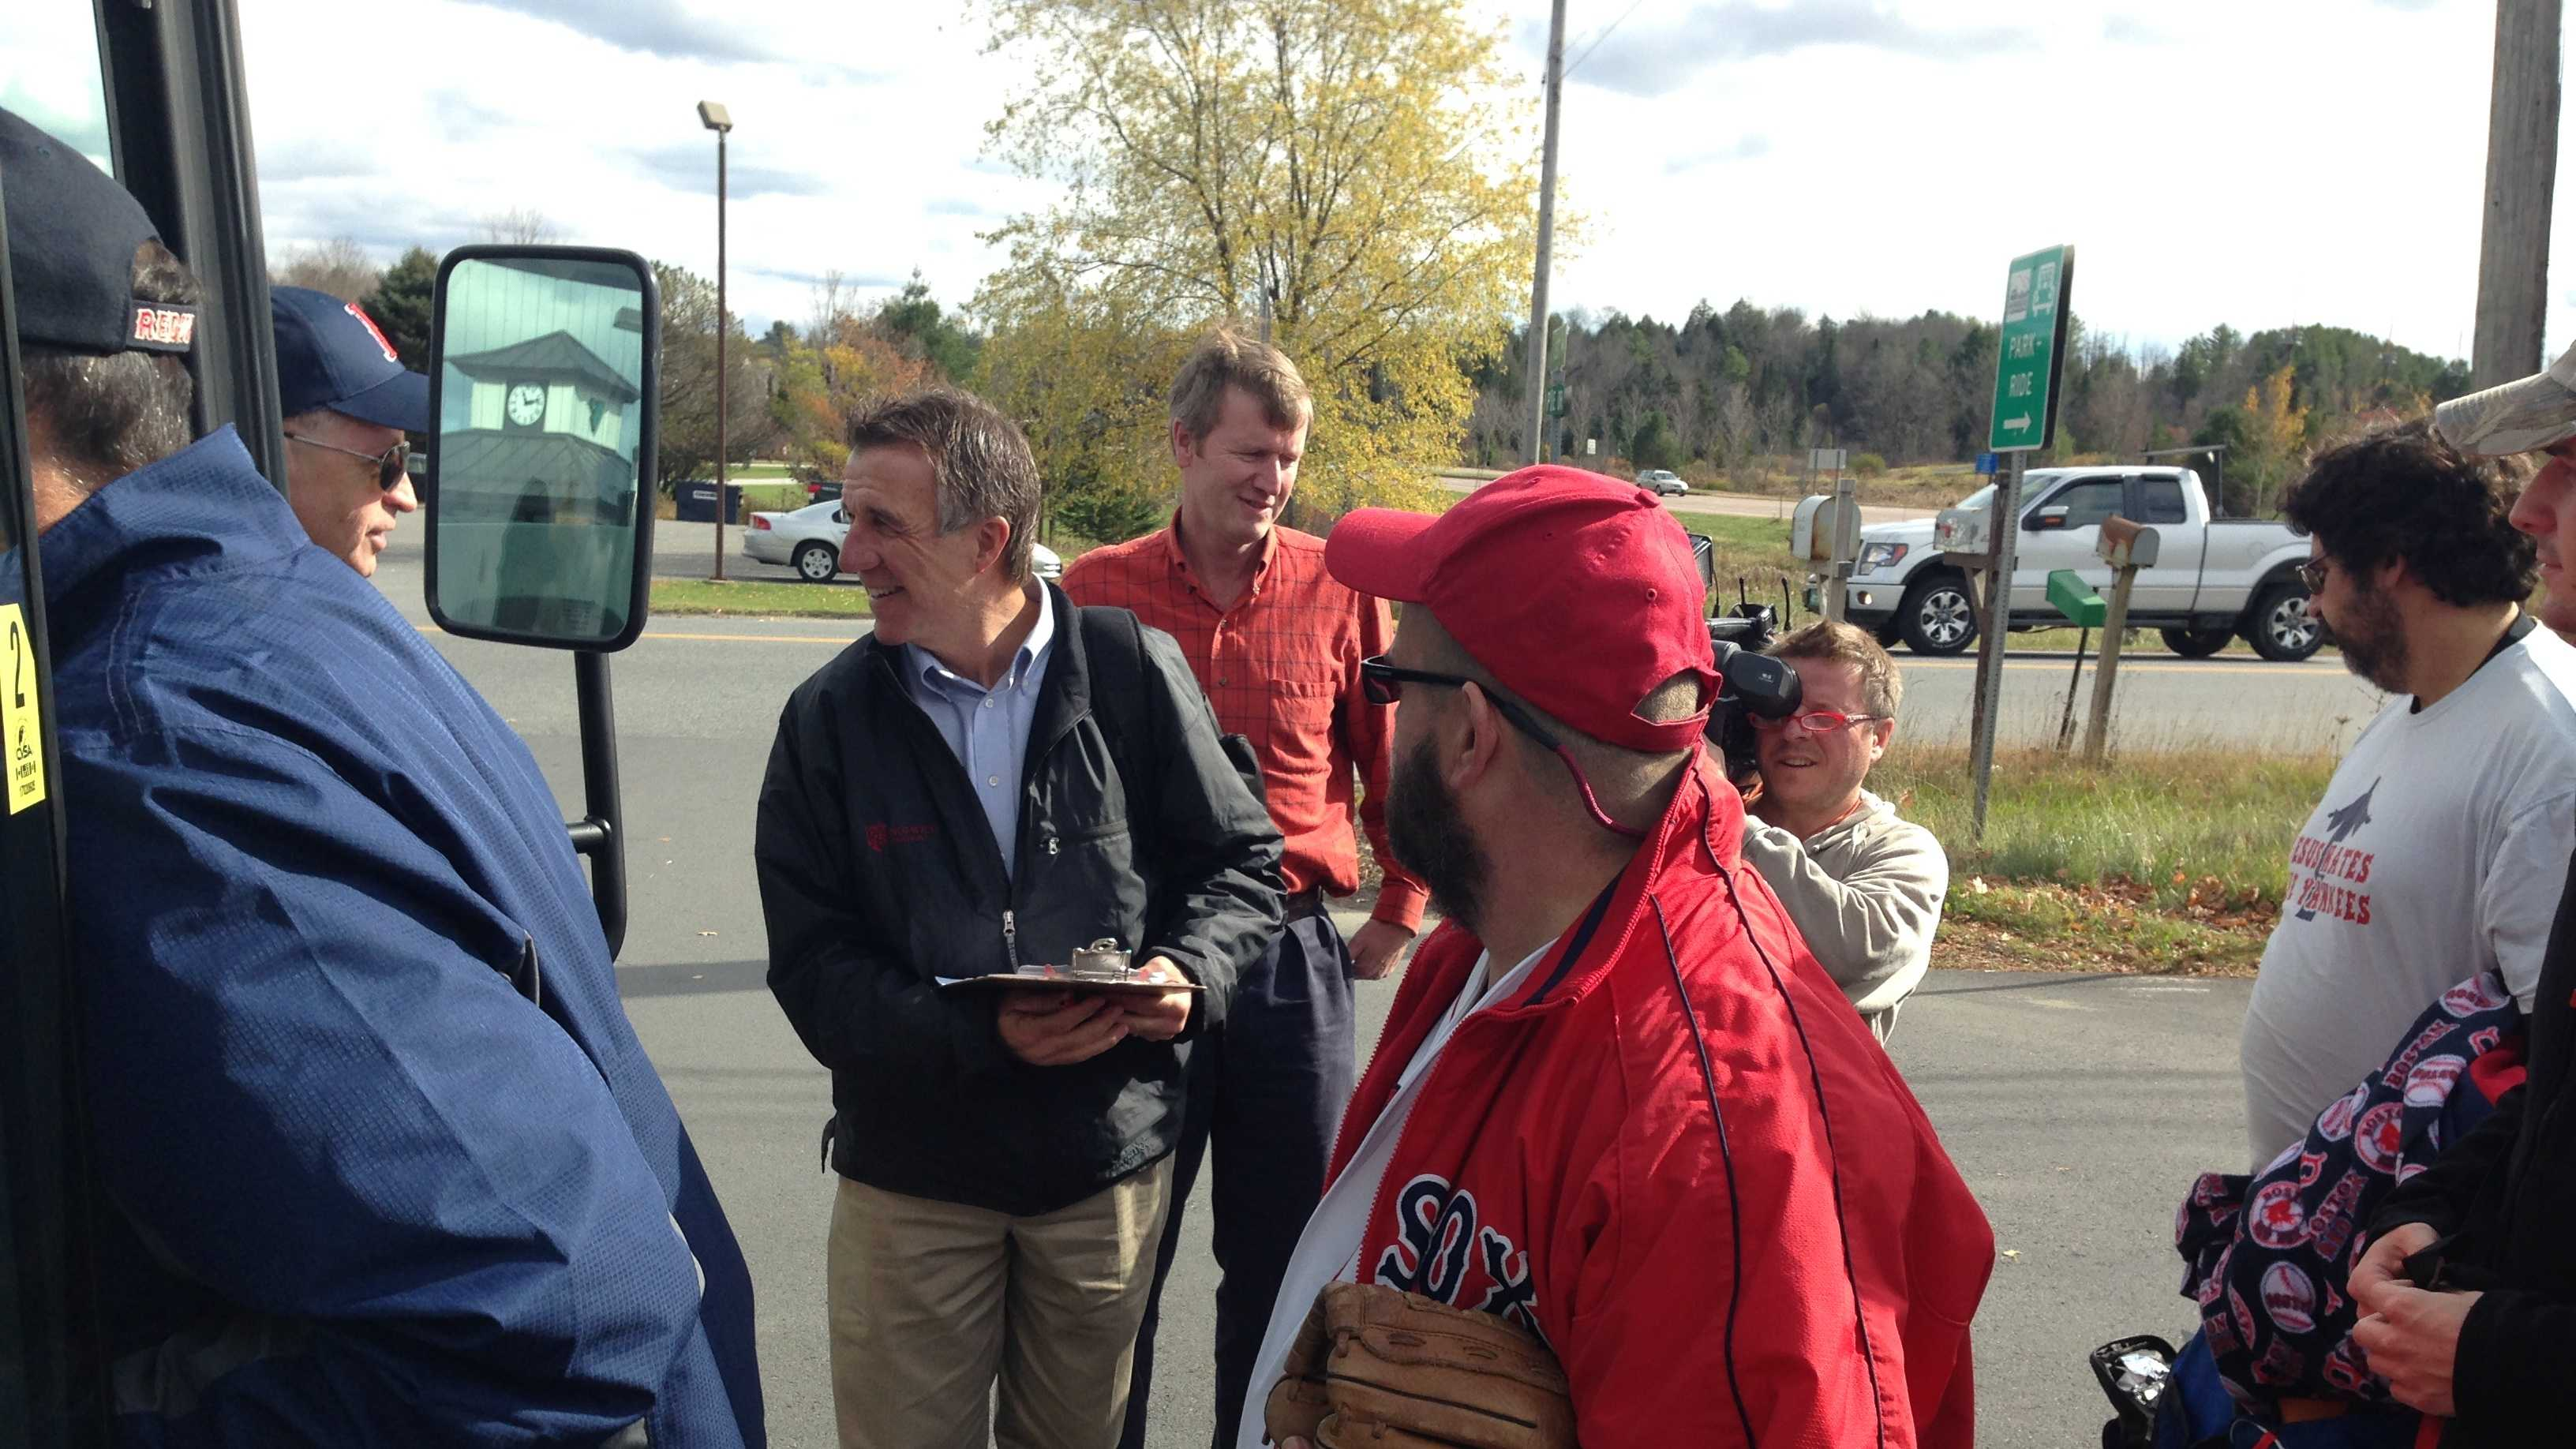 Lt. Gov. Phil Scott joined Red Sox fans for a trip to the World Series last fall.